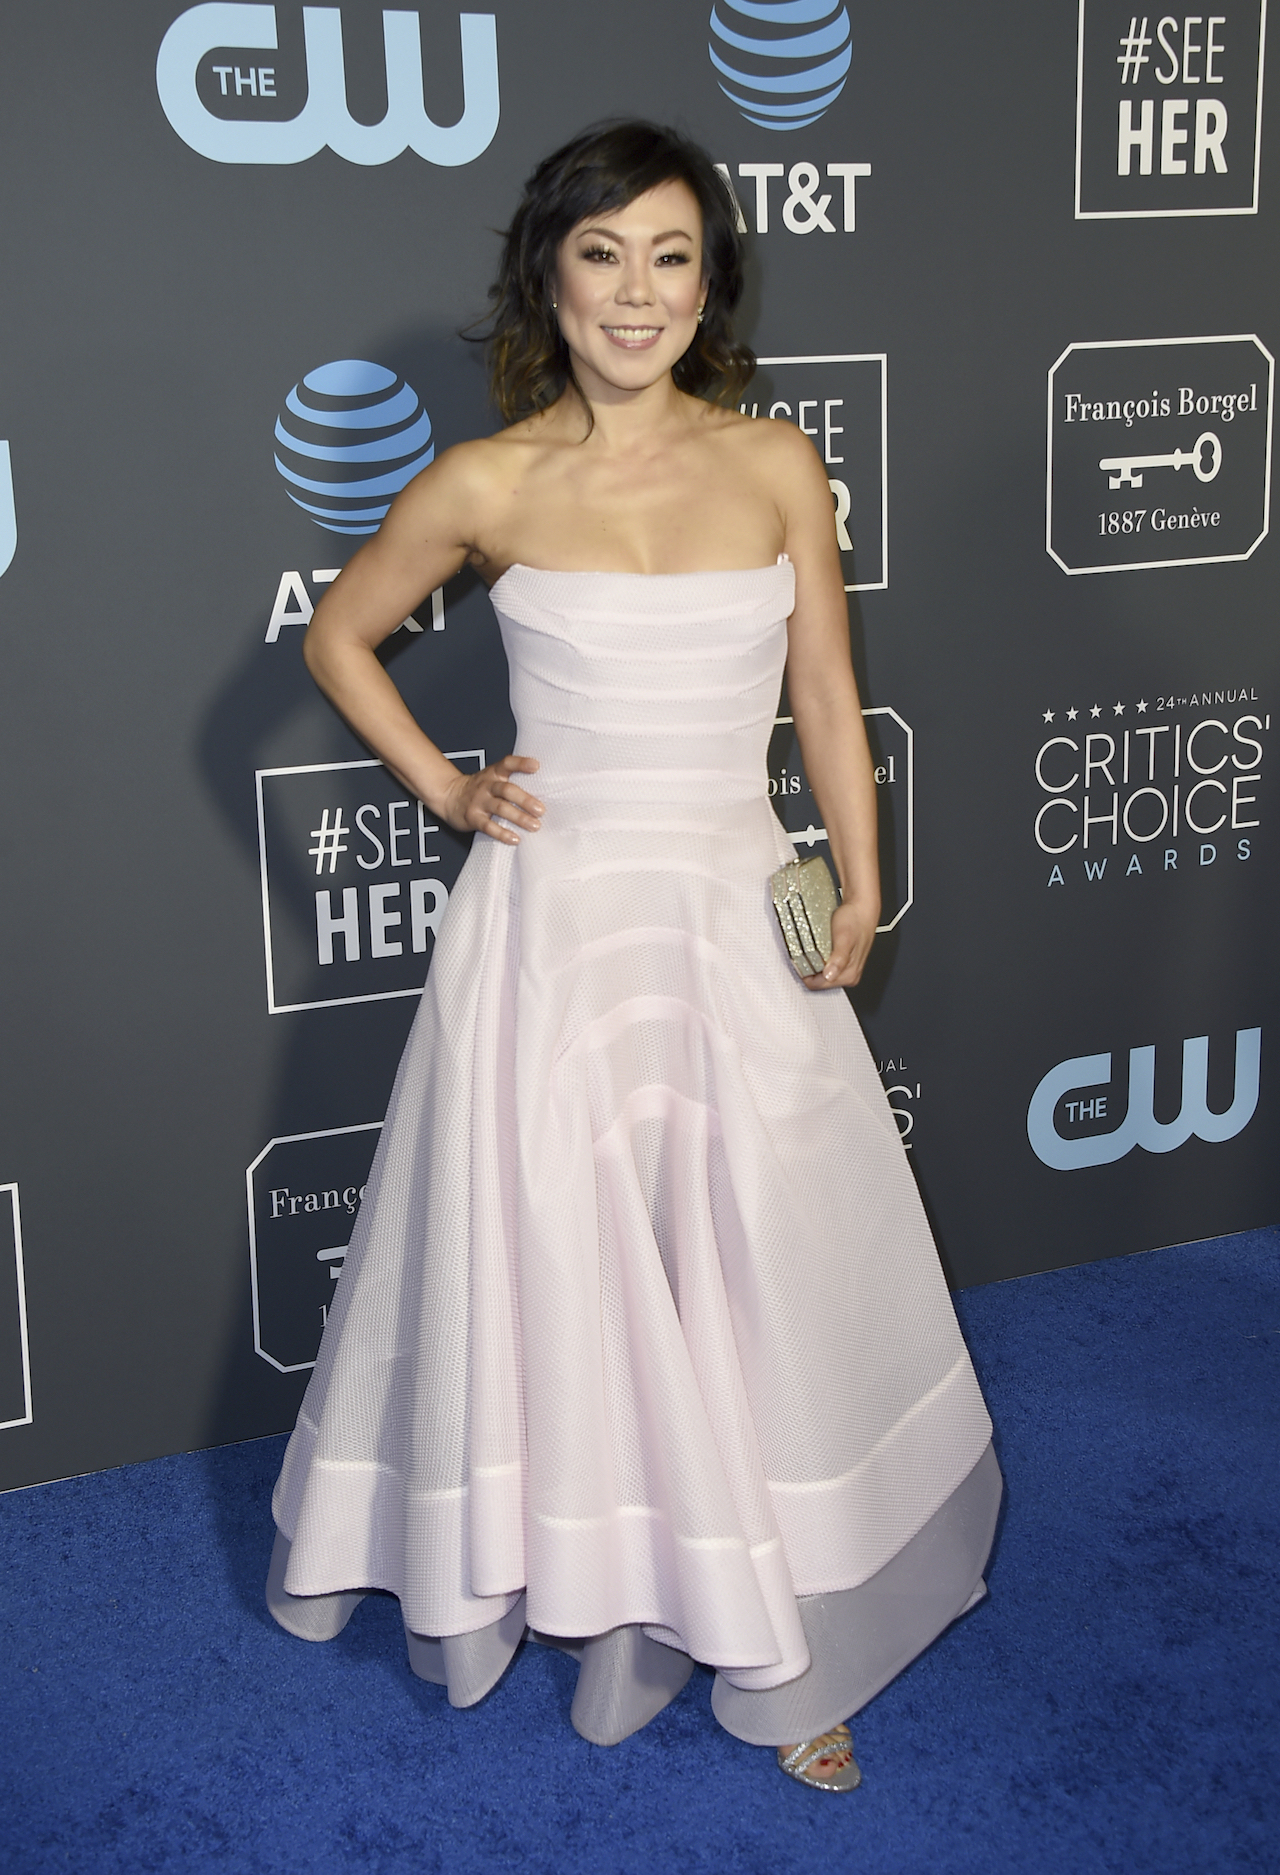 <div class='meta'><div class='origin-logo' data-origin='AP'></div><span class='caption-text' data-credit='Jordan Strauss/Invision/AP'>Ali Ahn arrives at the 24th annual Critics' Choice Awards on Sunday, Jan. 13, 2019, at the Barker Hangar in Santa Monica, Calif.</span></div>